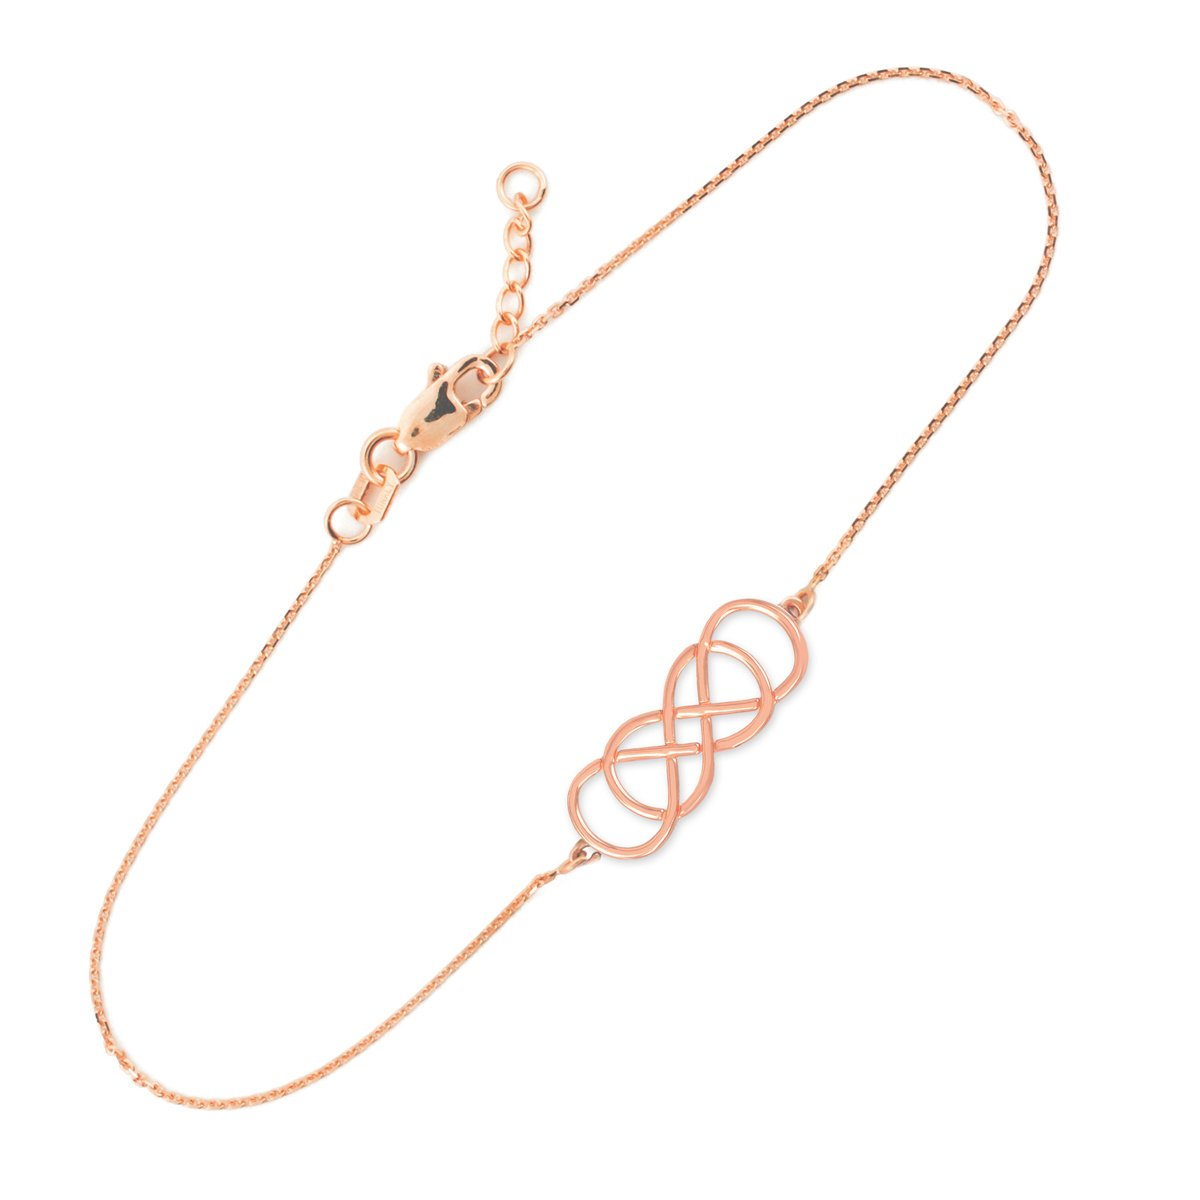 High Polish 14k Rose Gold Double Infinity Bracelet, 7.5'' Adjustable to 8''